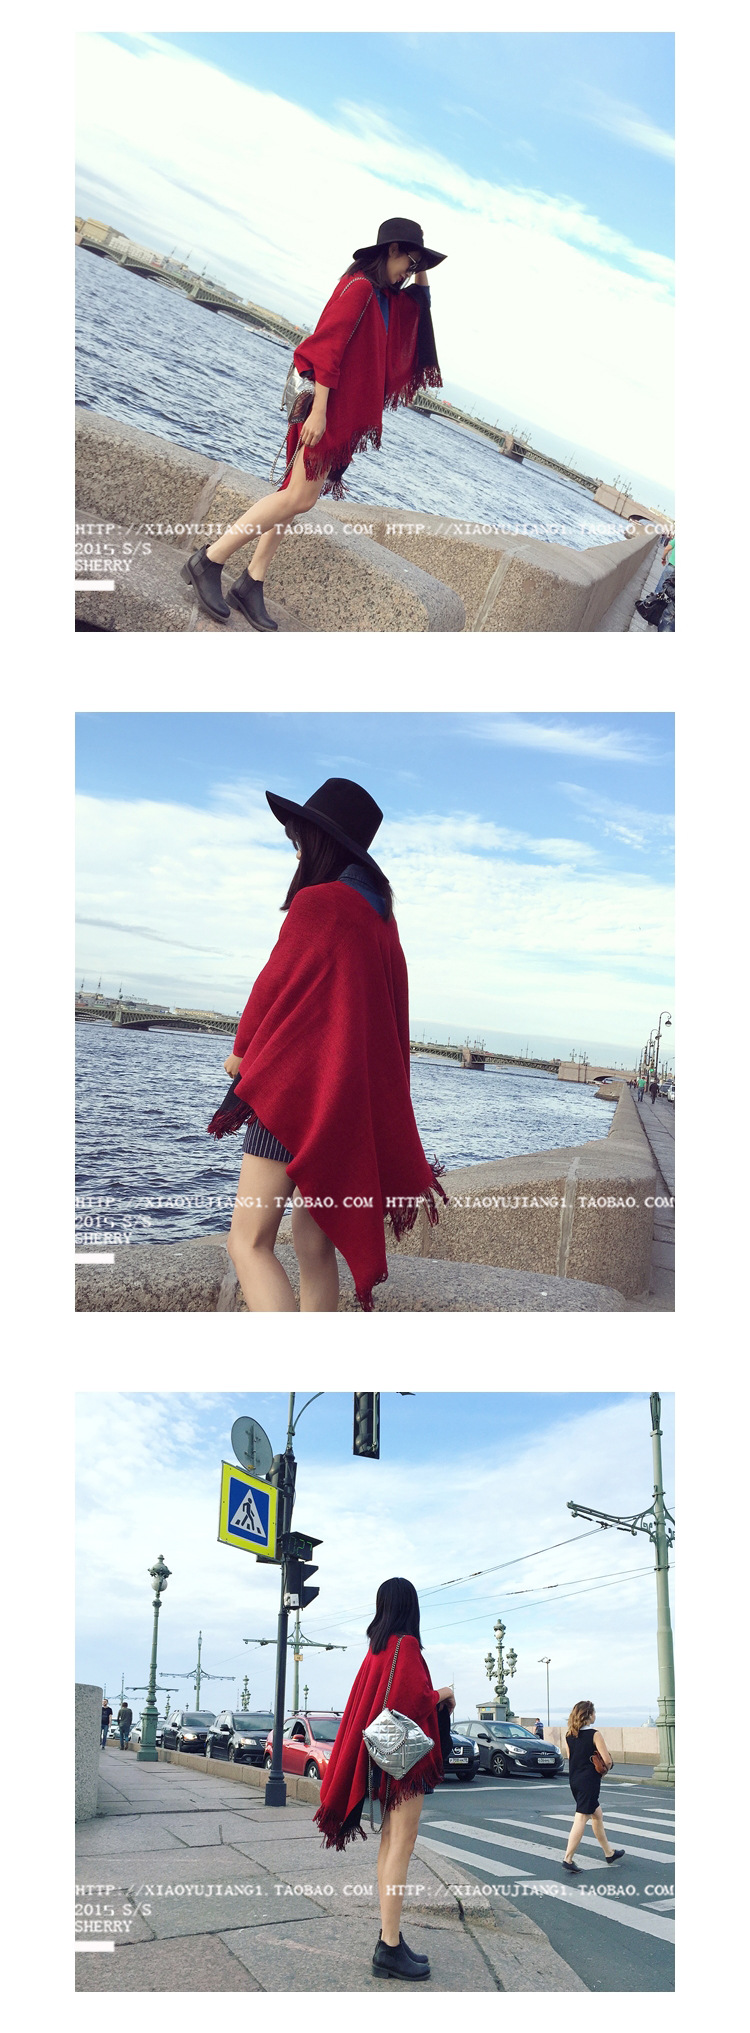 2016 Korean Winter Scarf Taobao explosion winter fringed shawl knitted scarf color red Free shipping